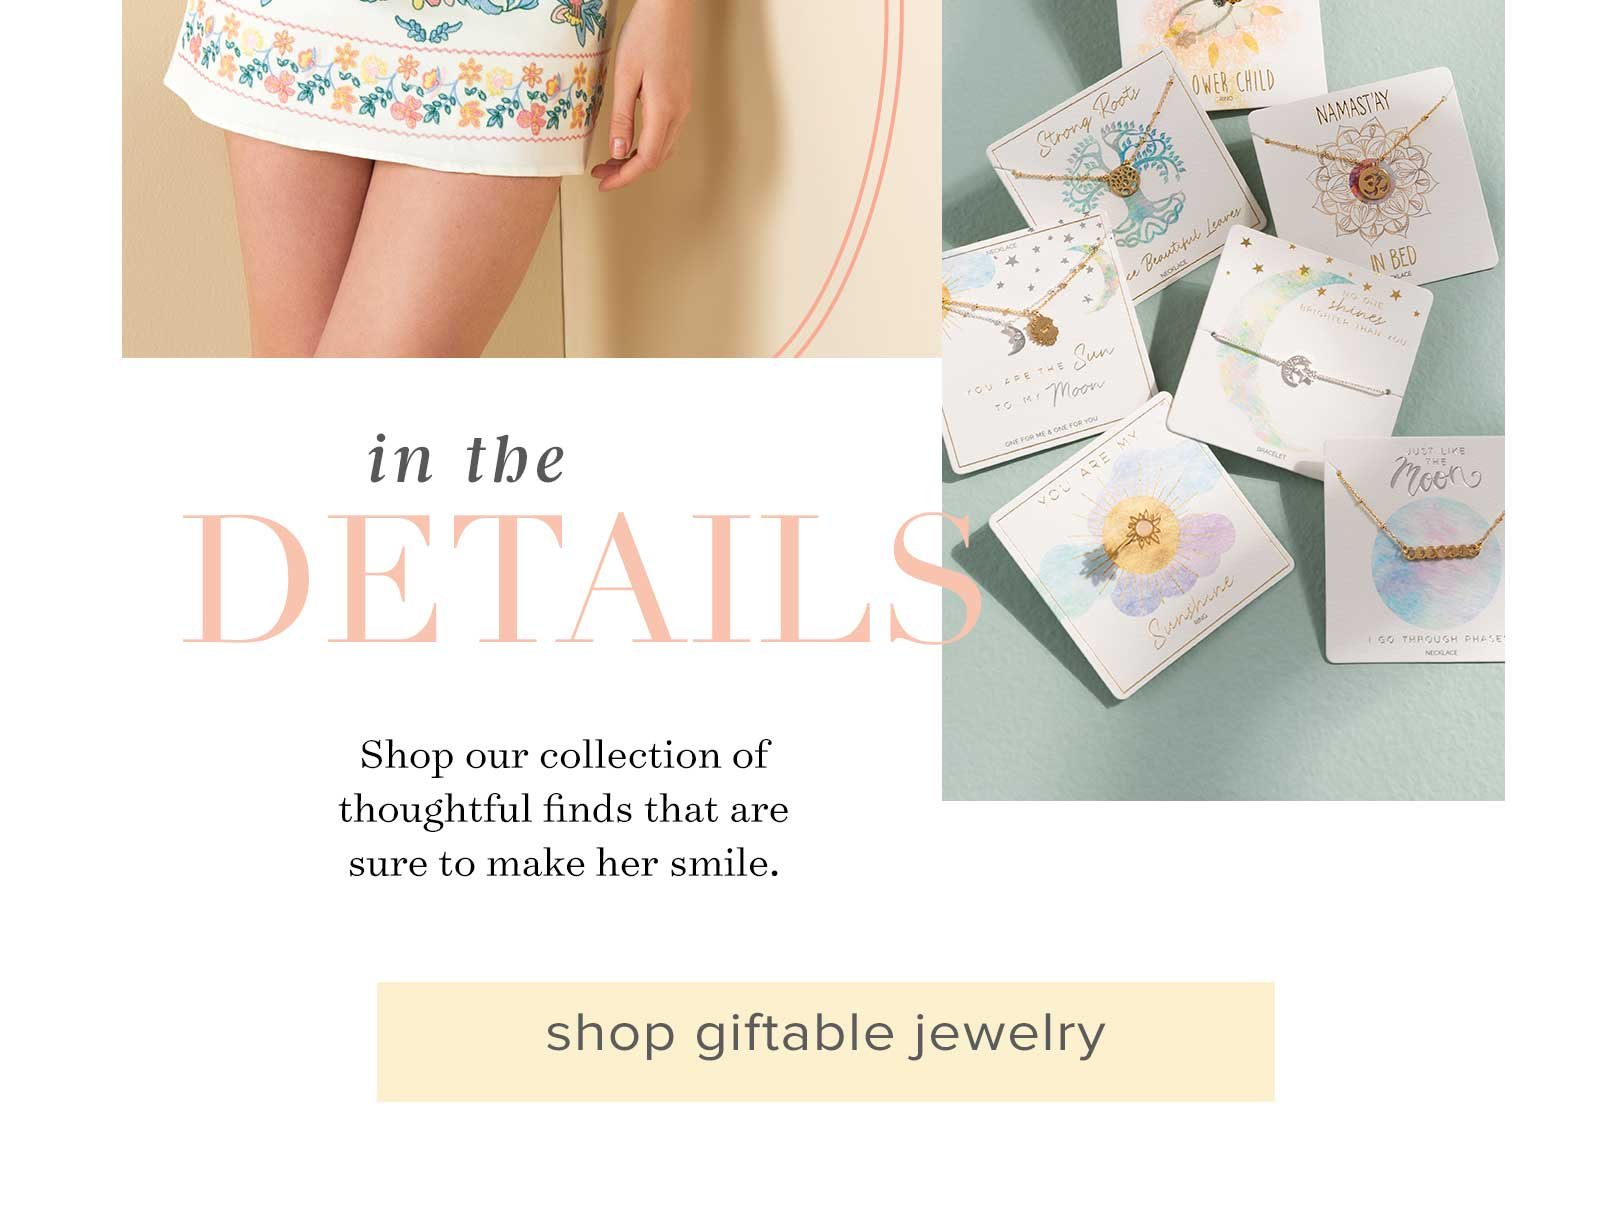 SHOP GIFTABLE JEWELRY